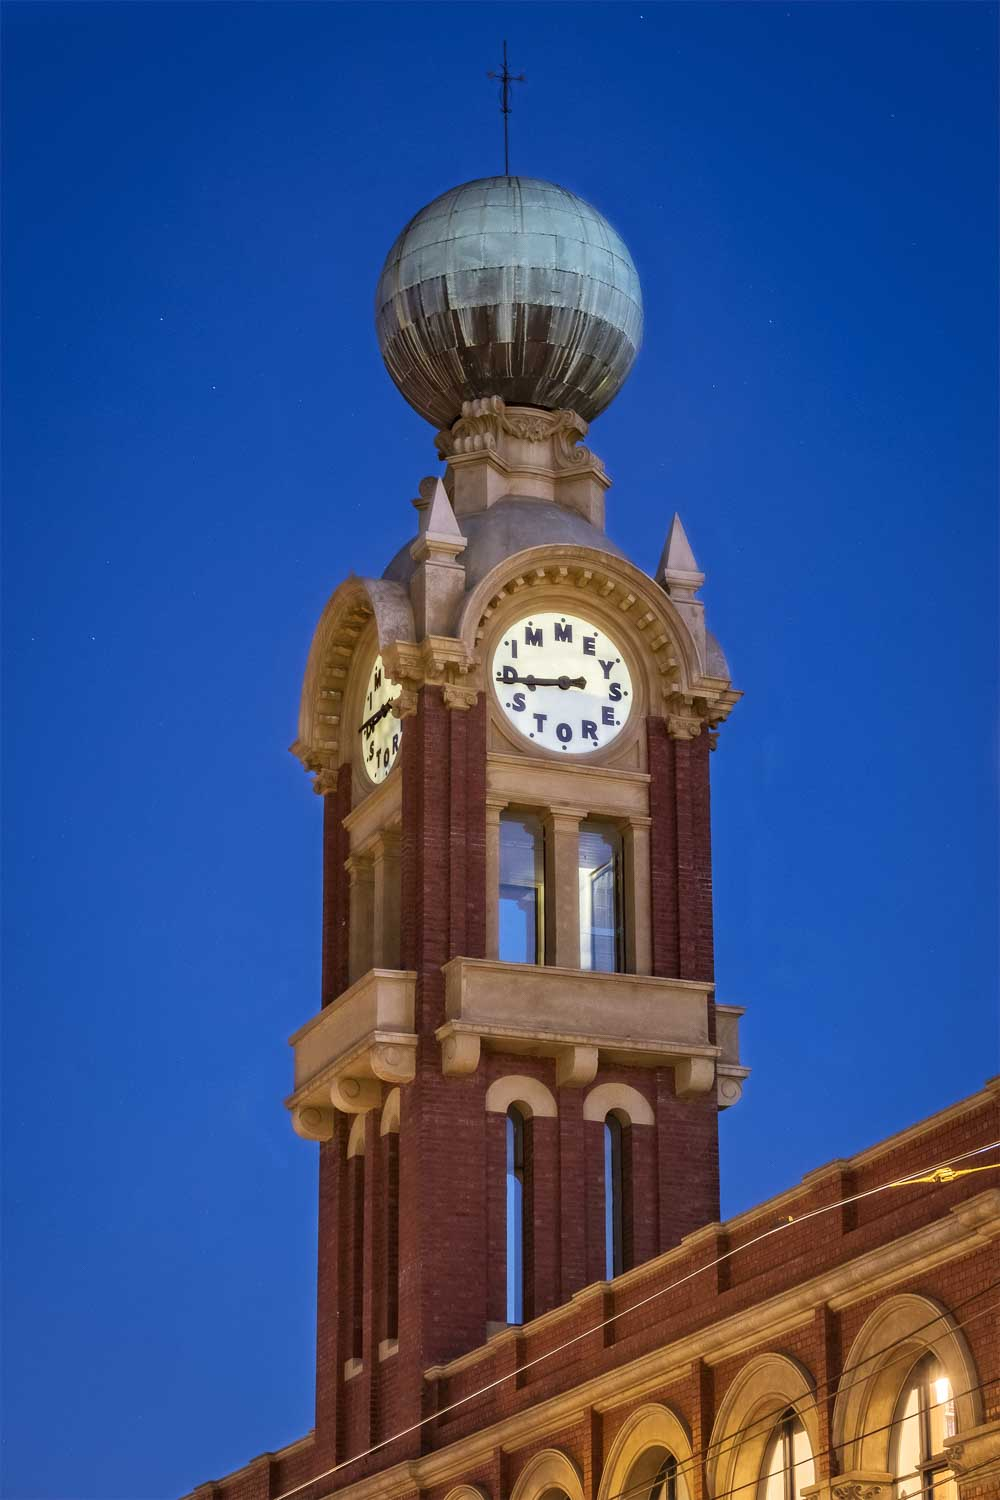 Dimmeys clock tower, Richmond